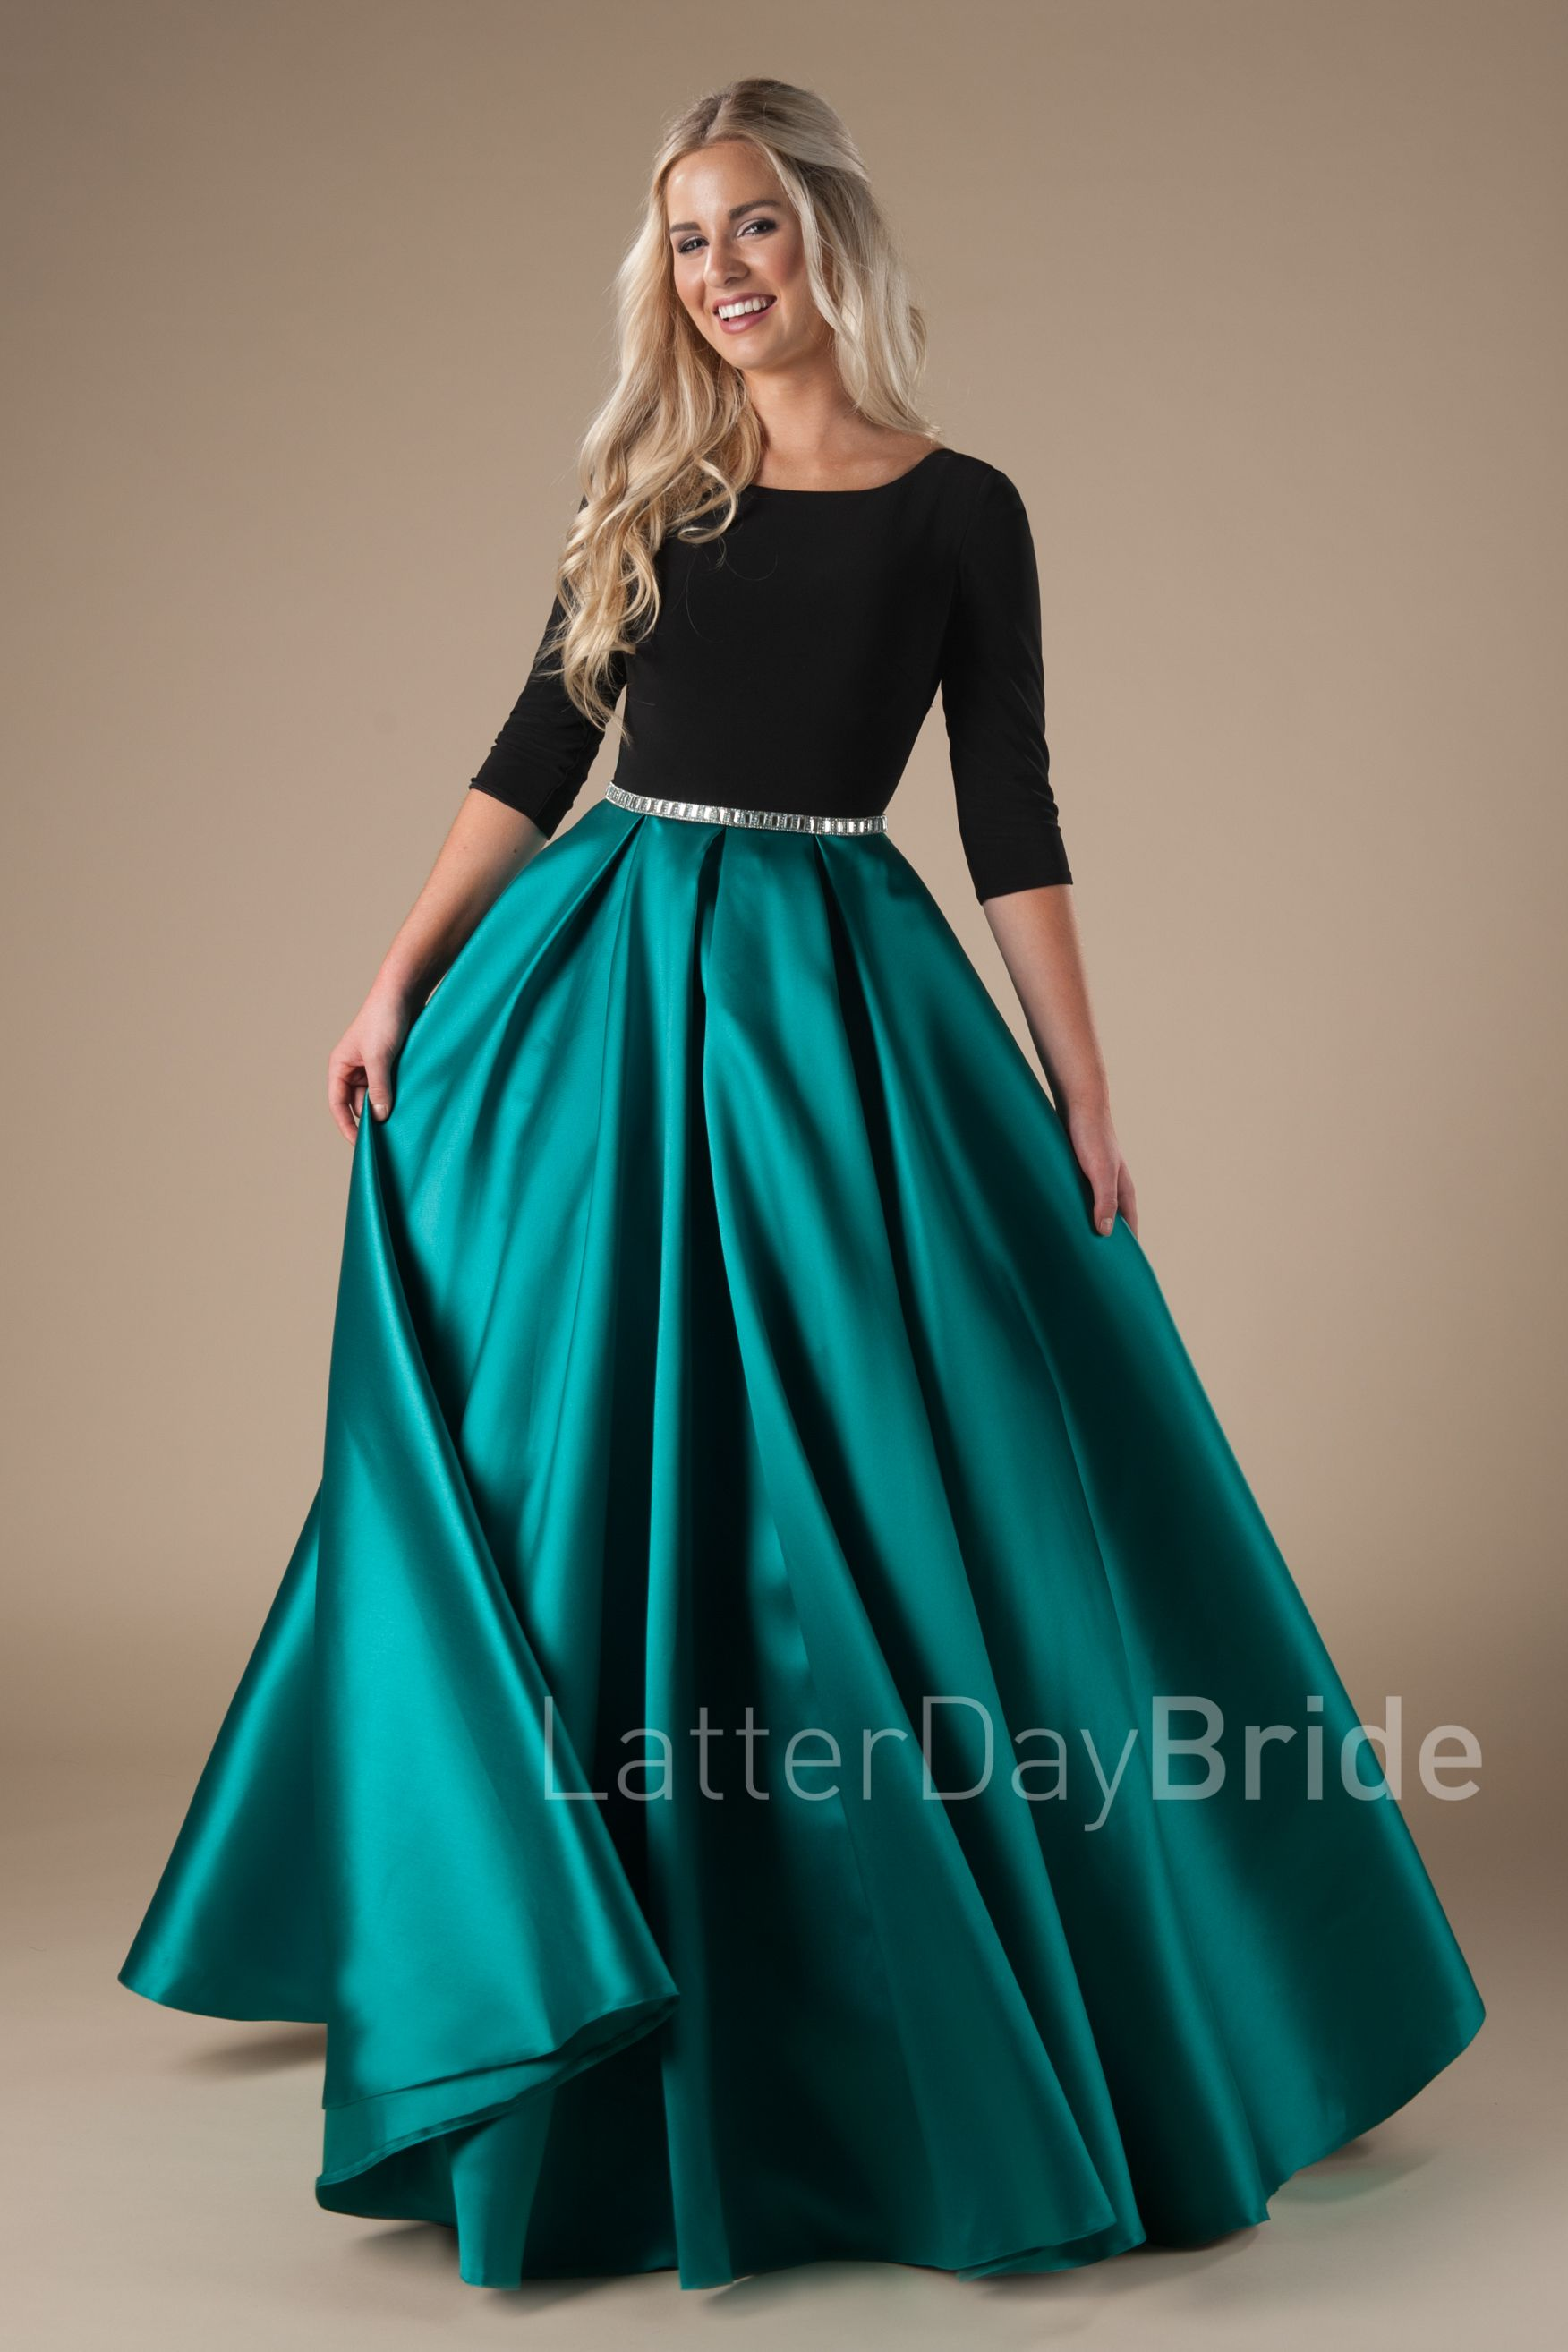 Lainey | Prom | Pinterest | Prom, Modest prom dresses and Formal